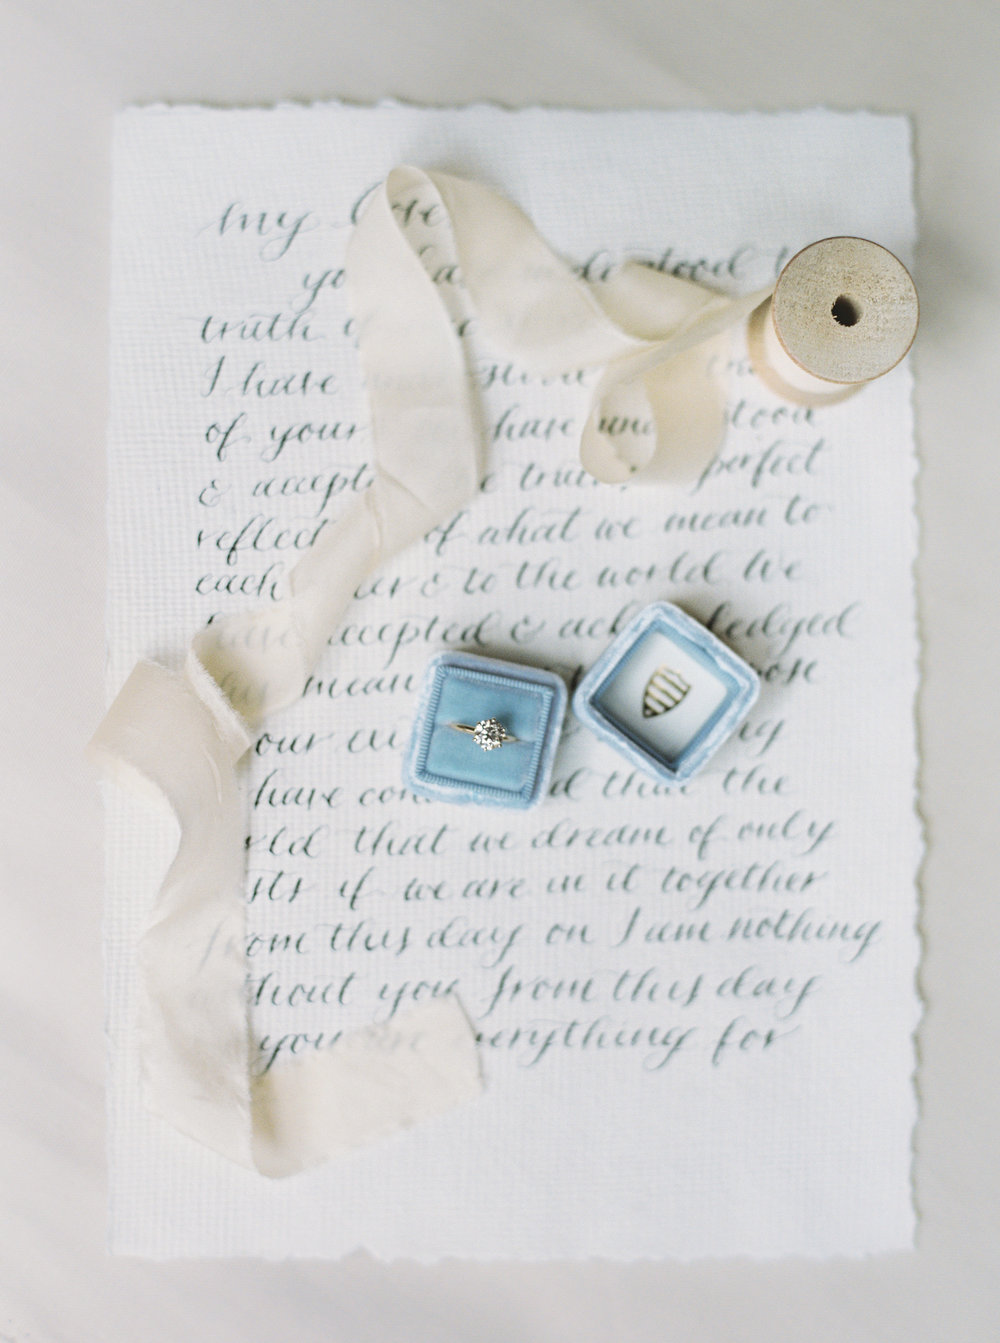 Calligraphy: Spurlé Gul Studio | Photography: Simply Sarah Photography